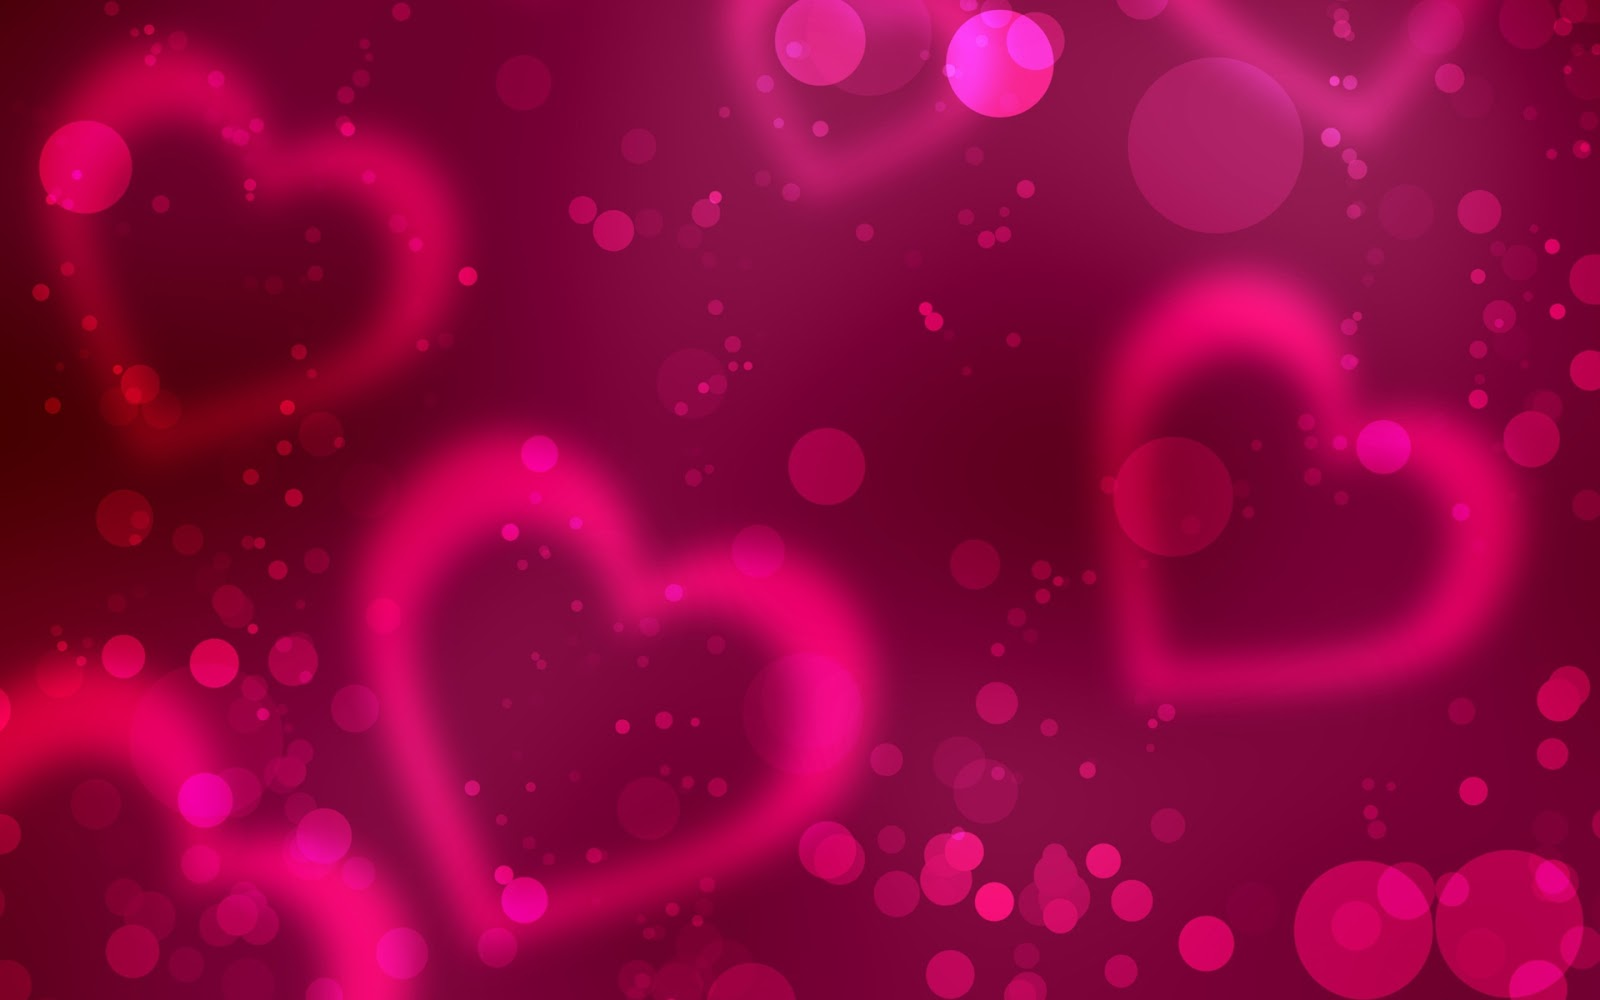 Free Download Love Background Wallpaper Pk43 Hd Love Pictures